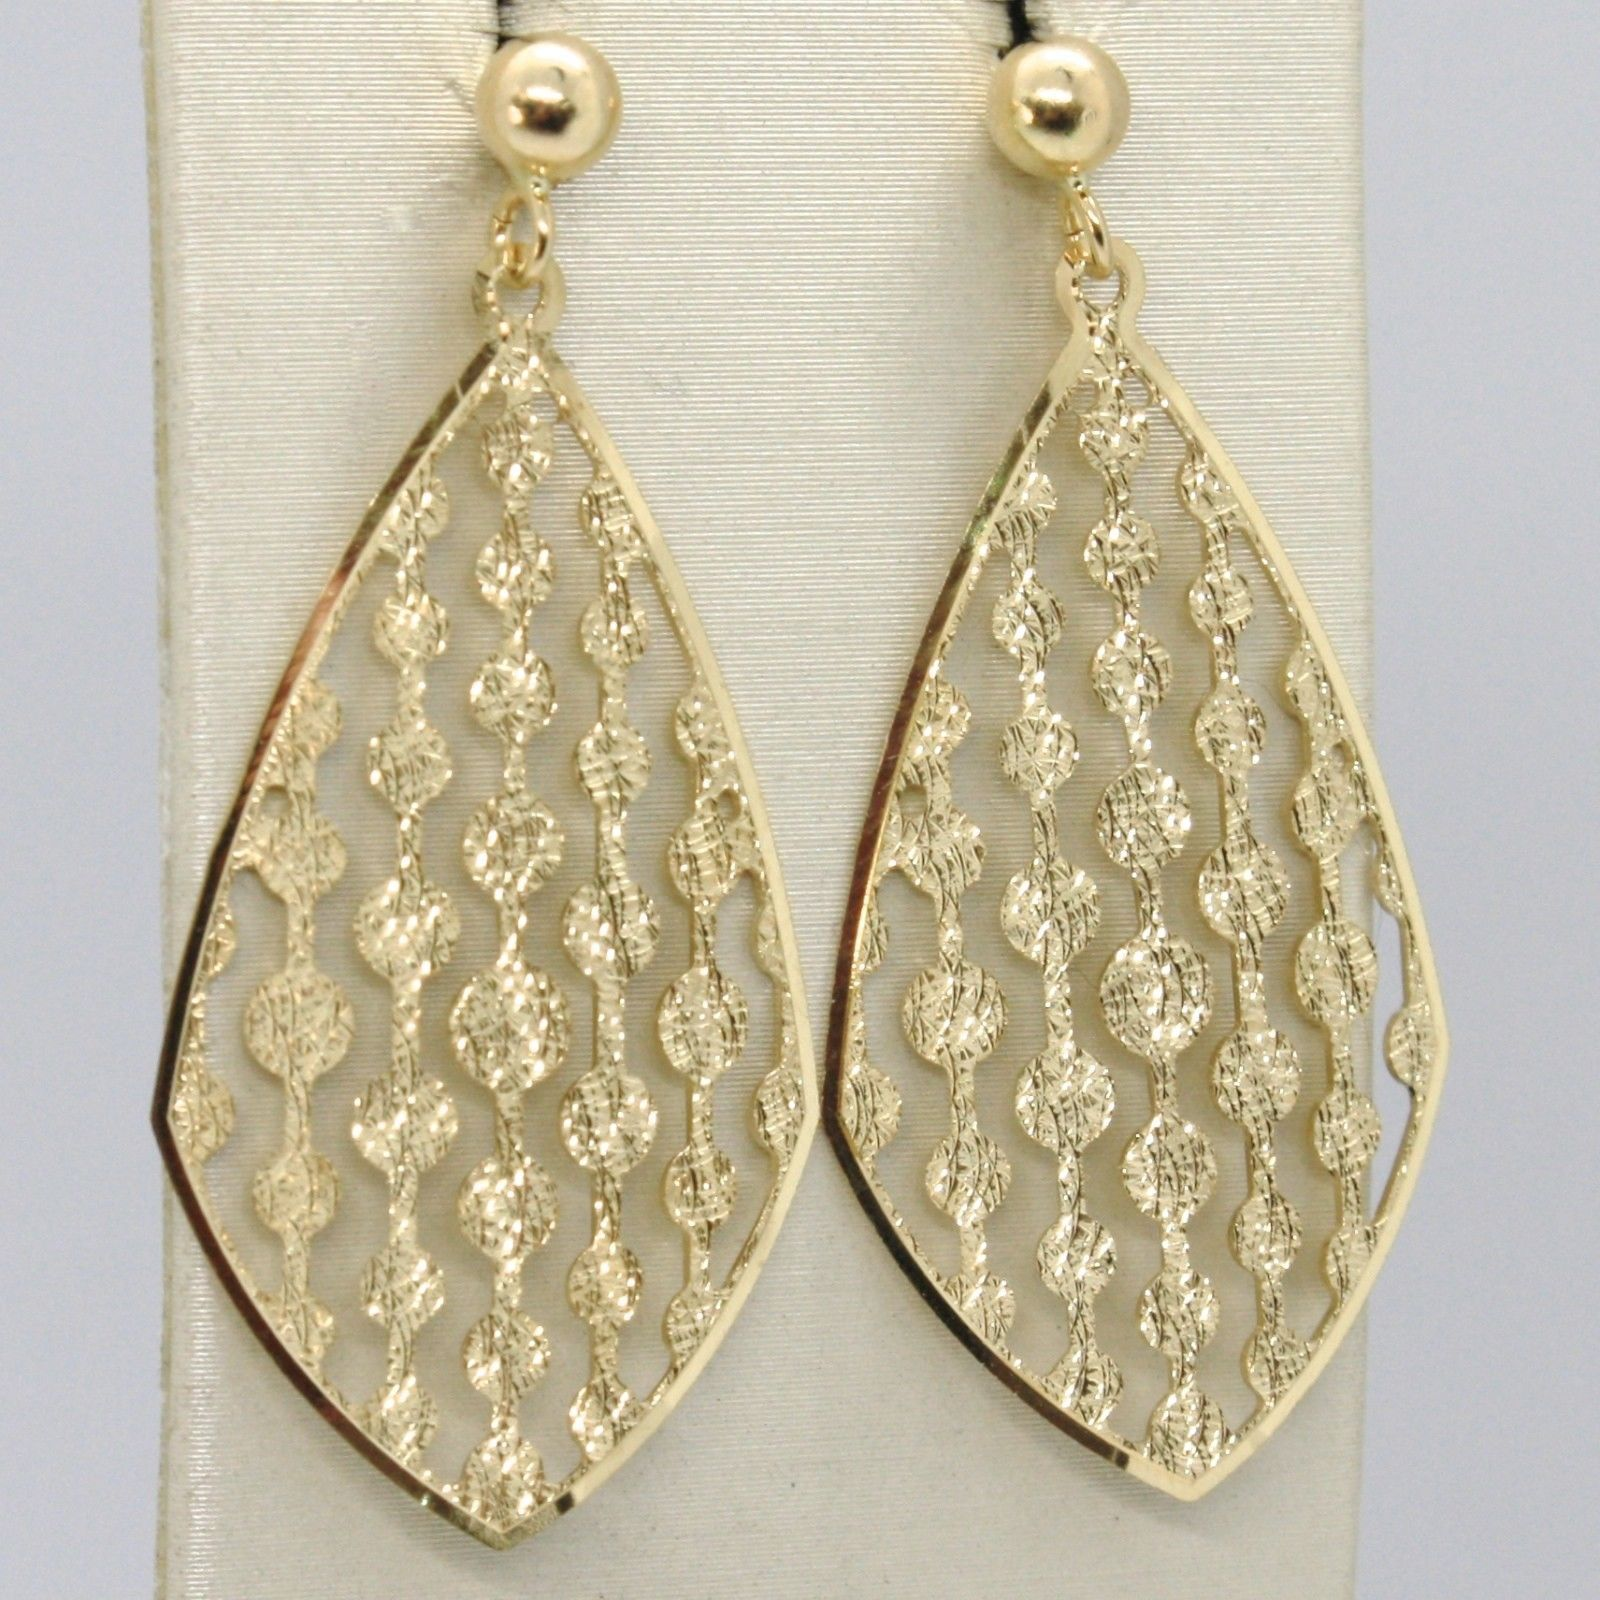 YELLOW GOLD EARRINGS 18K 750 HANGING DIAMOND PATTERN WORKED PERFORATED